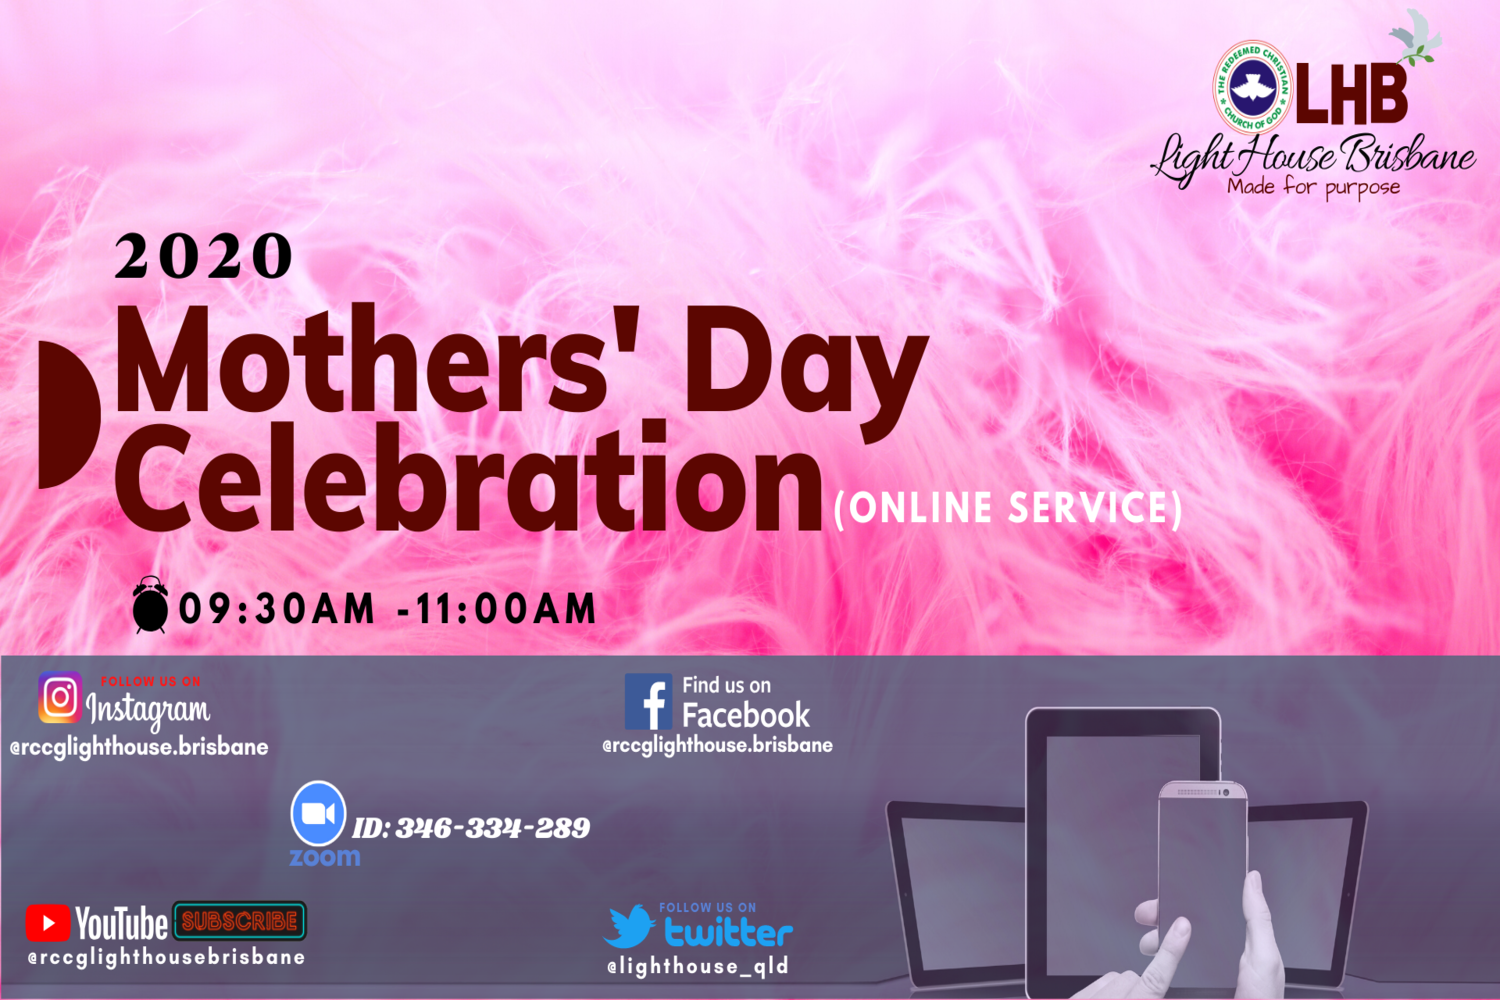 Mother's Day Celebration 2020